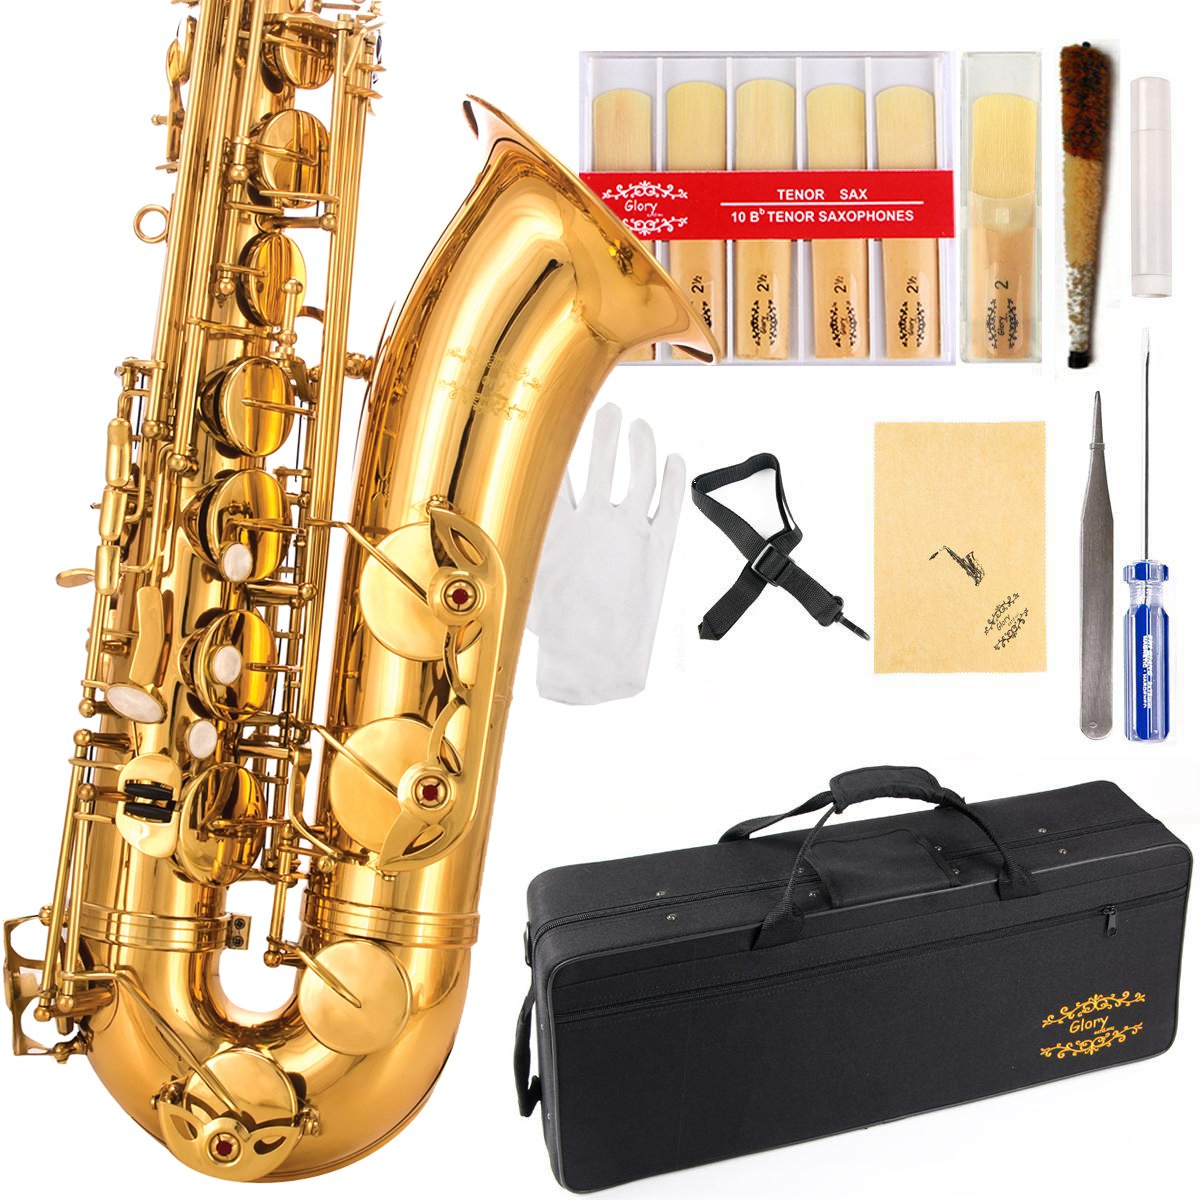 Glory Gold Laquer B Flat Tenor Saxophone with Case,10pc Reeds,Mouth Piece,Screw Driver,Nipper. A pair of gloves, Soft Cleaning Cloth. by GLORY